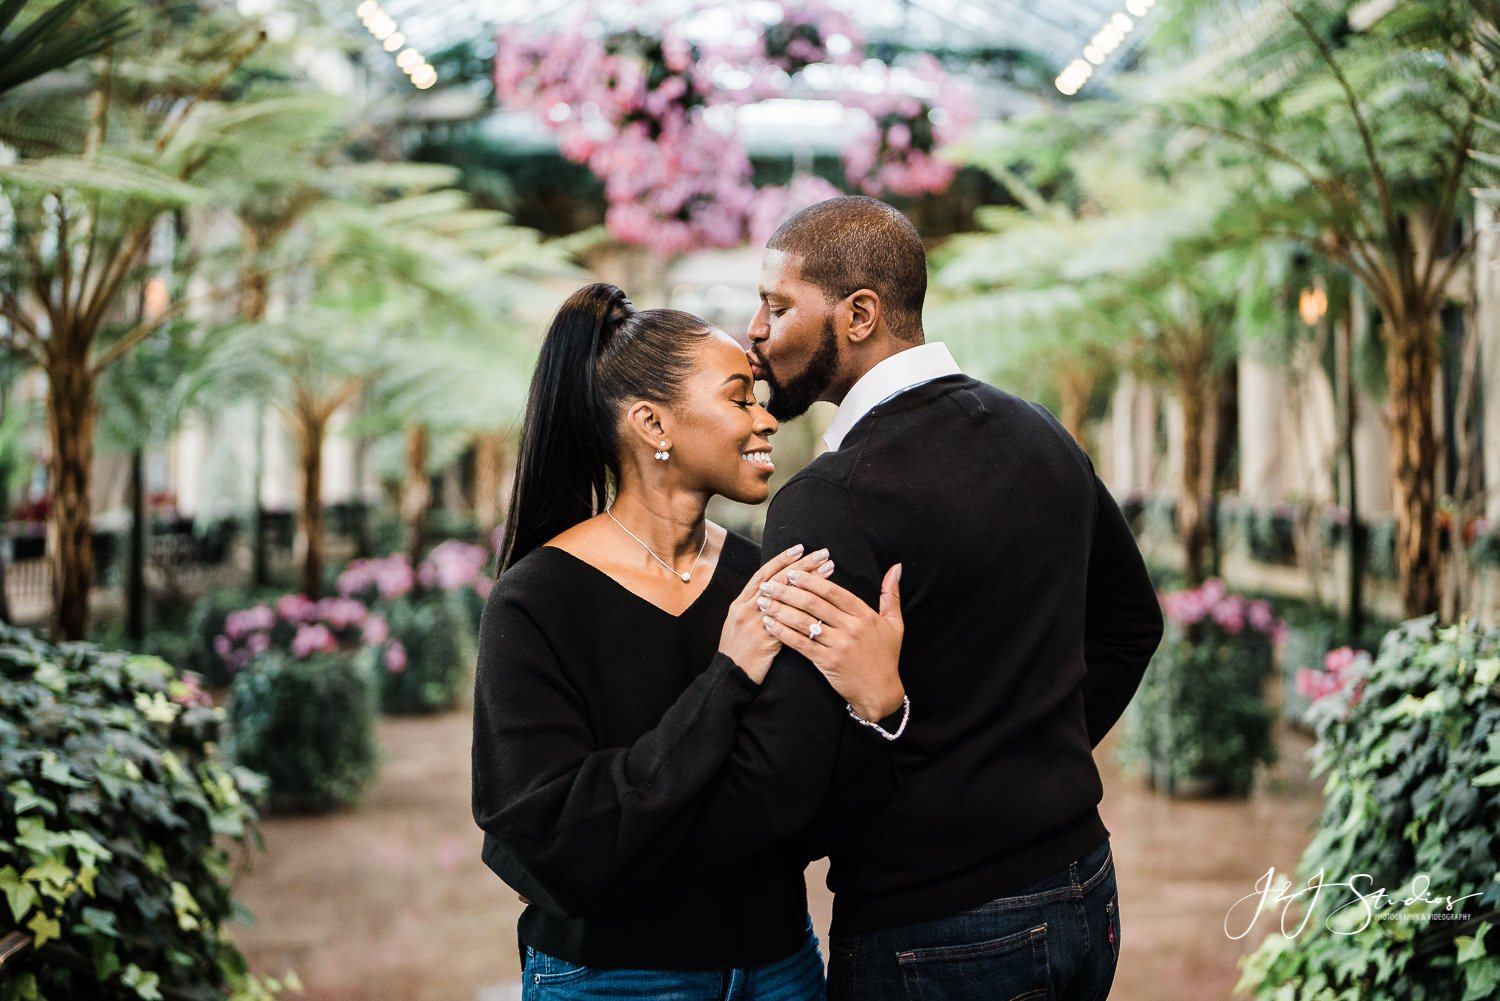 The Picture Perfect Portrait Session at Longwood Gardens